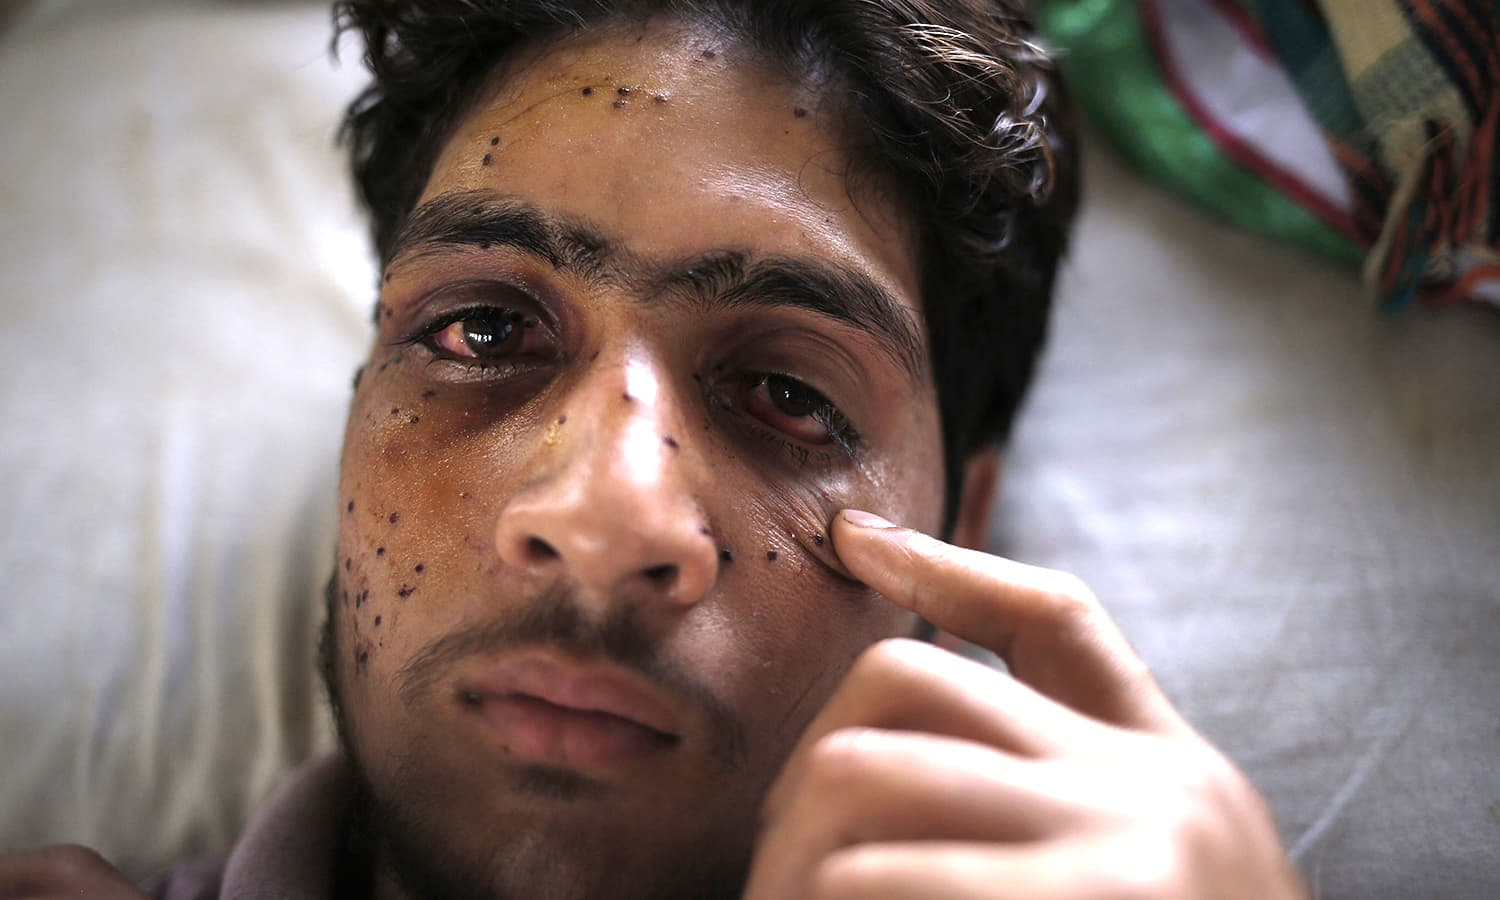 What pellet guns have done to protesters in Kashmir